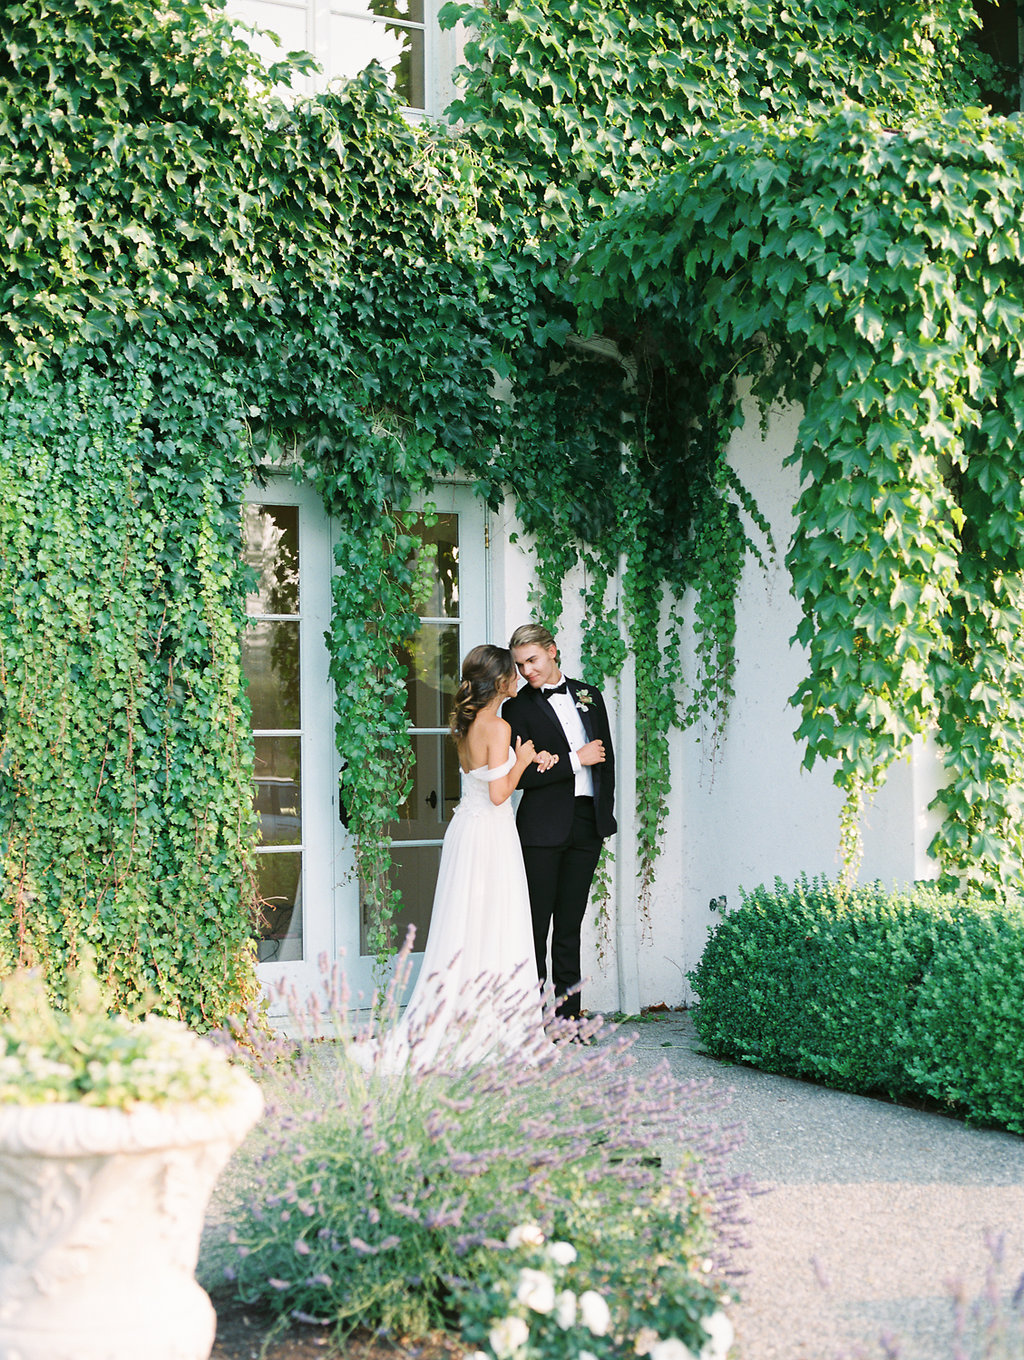 LuxProvenceWeddingInspired-SavanMentorshipbyJonandMochPhotography(39of75).jpg